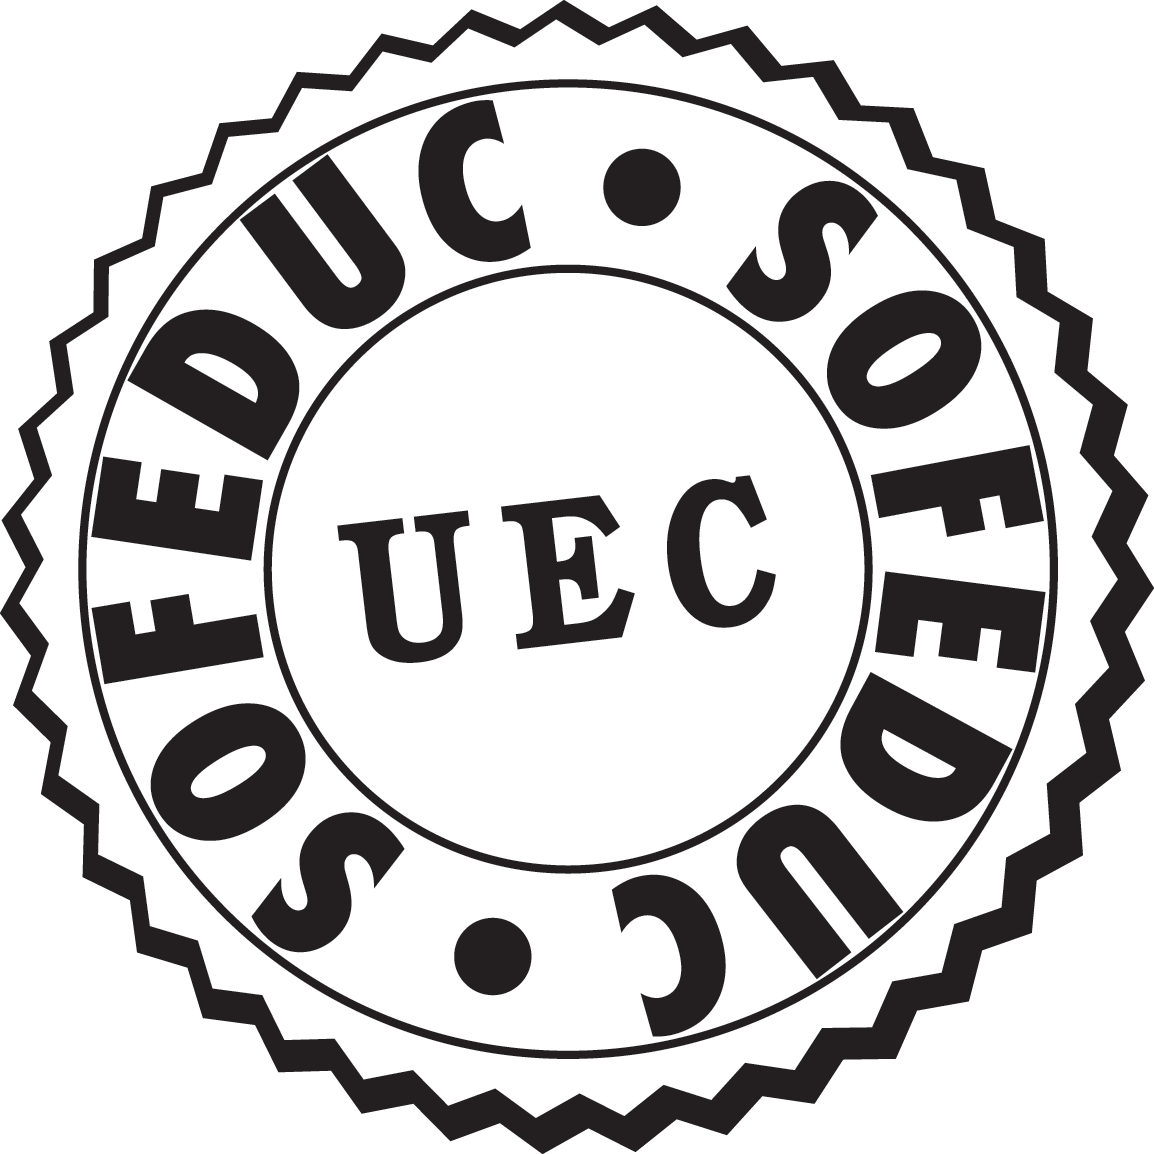 SOFEDUC accreditation for continuing education